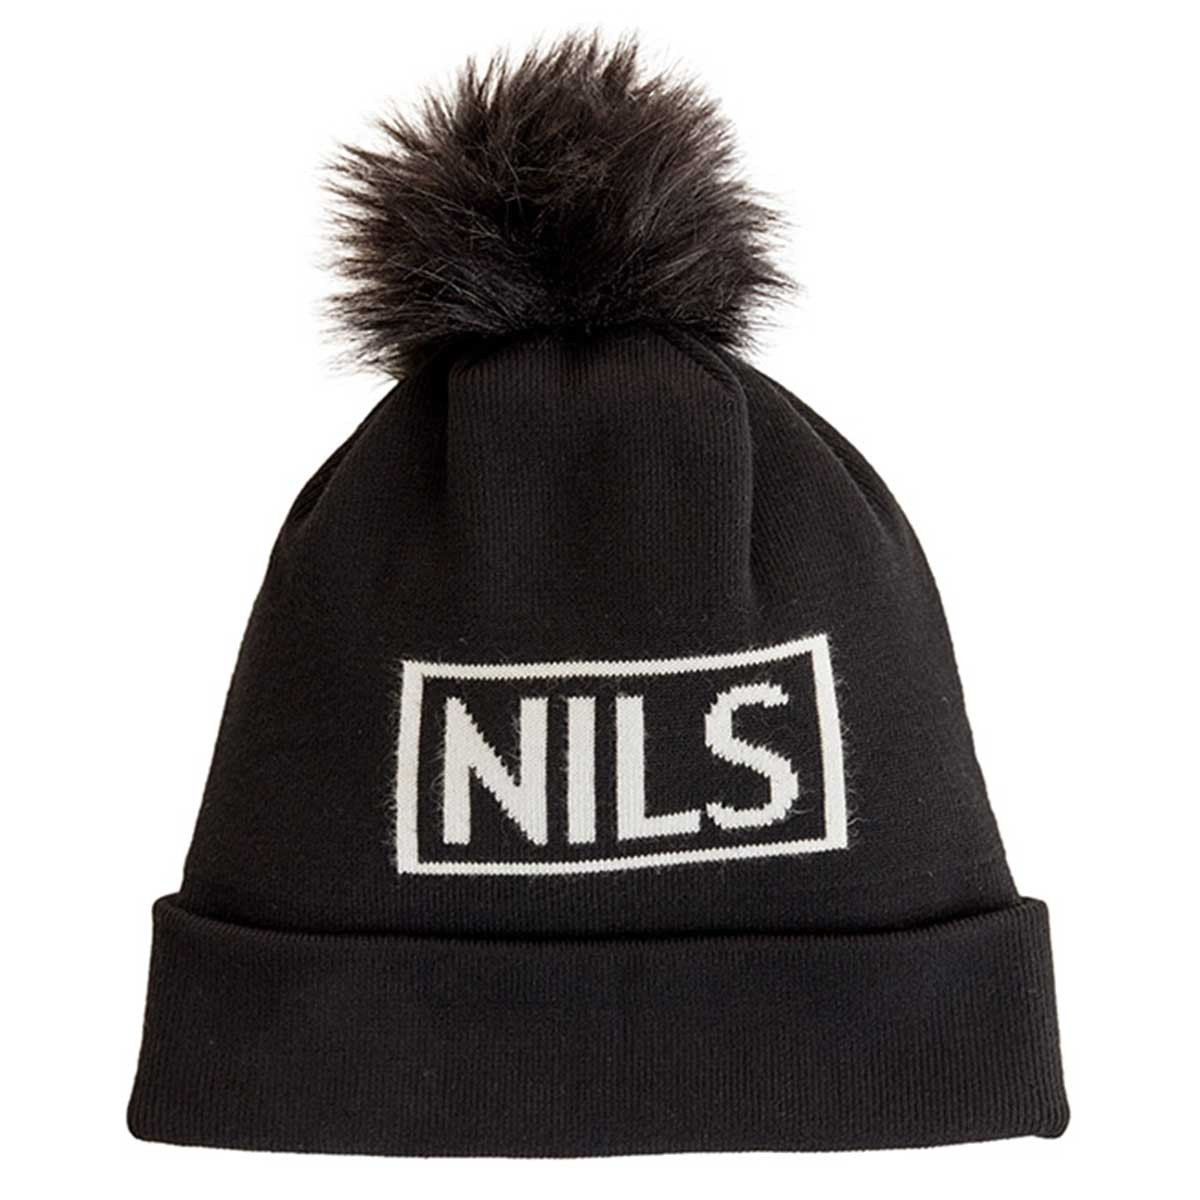 NILS knit beanie in black and white